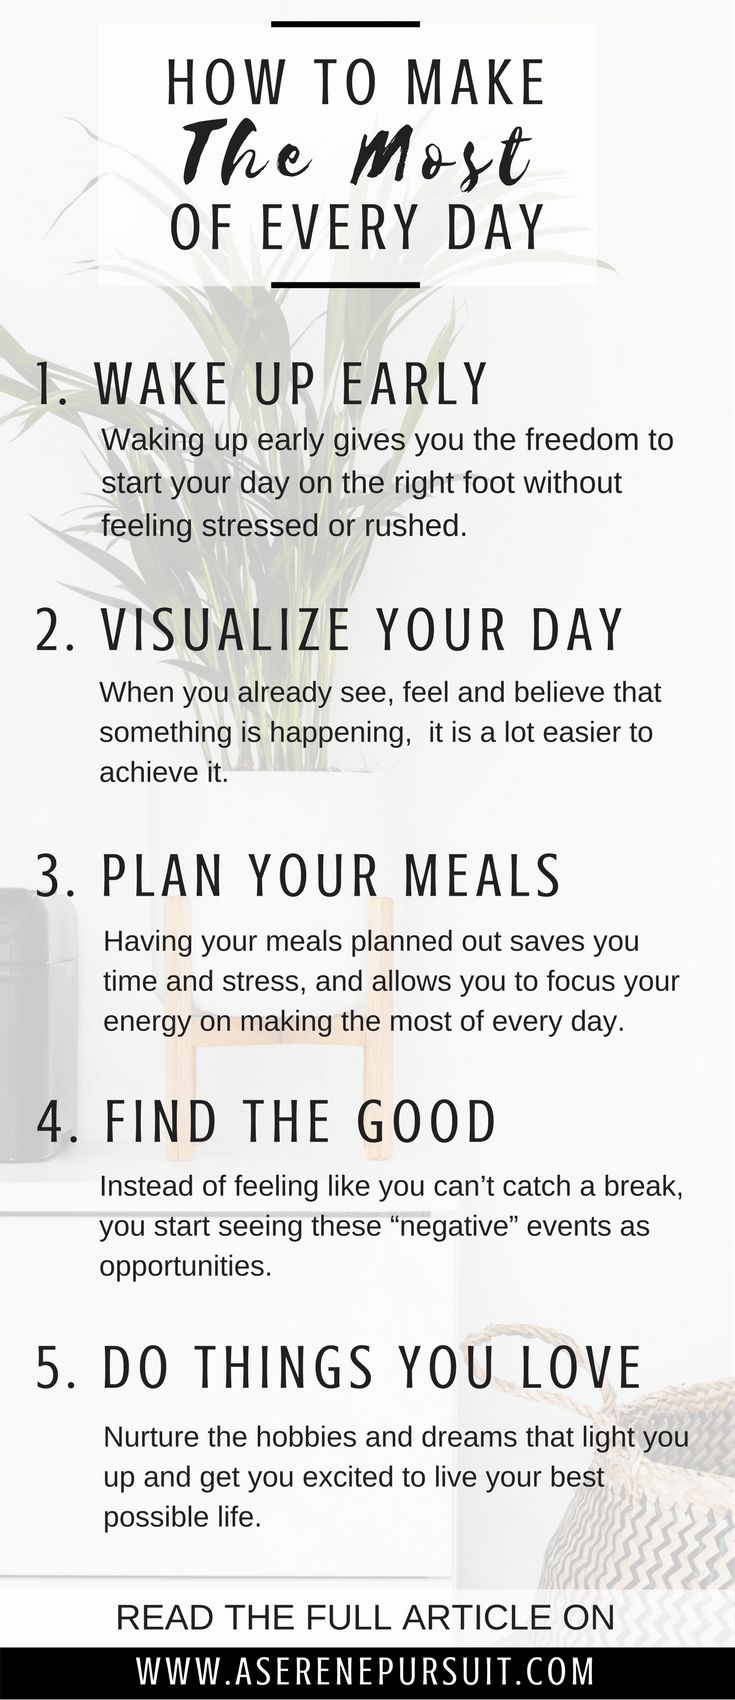 12 Tips on How to Make The Most of Every Day in 2018 | Are you tired of letting the days simply come and go? Do you want to make this year the best year yet? Start by making the most of today. Click through for simple tips and ideas on how to make the most of life and live out each day with intention. | 2018 goals | positive mindset | personal development | growth mindset motivation | change your mindset | happy thoughts | happy life | perspective inspiration | self improvement |